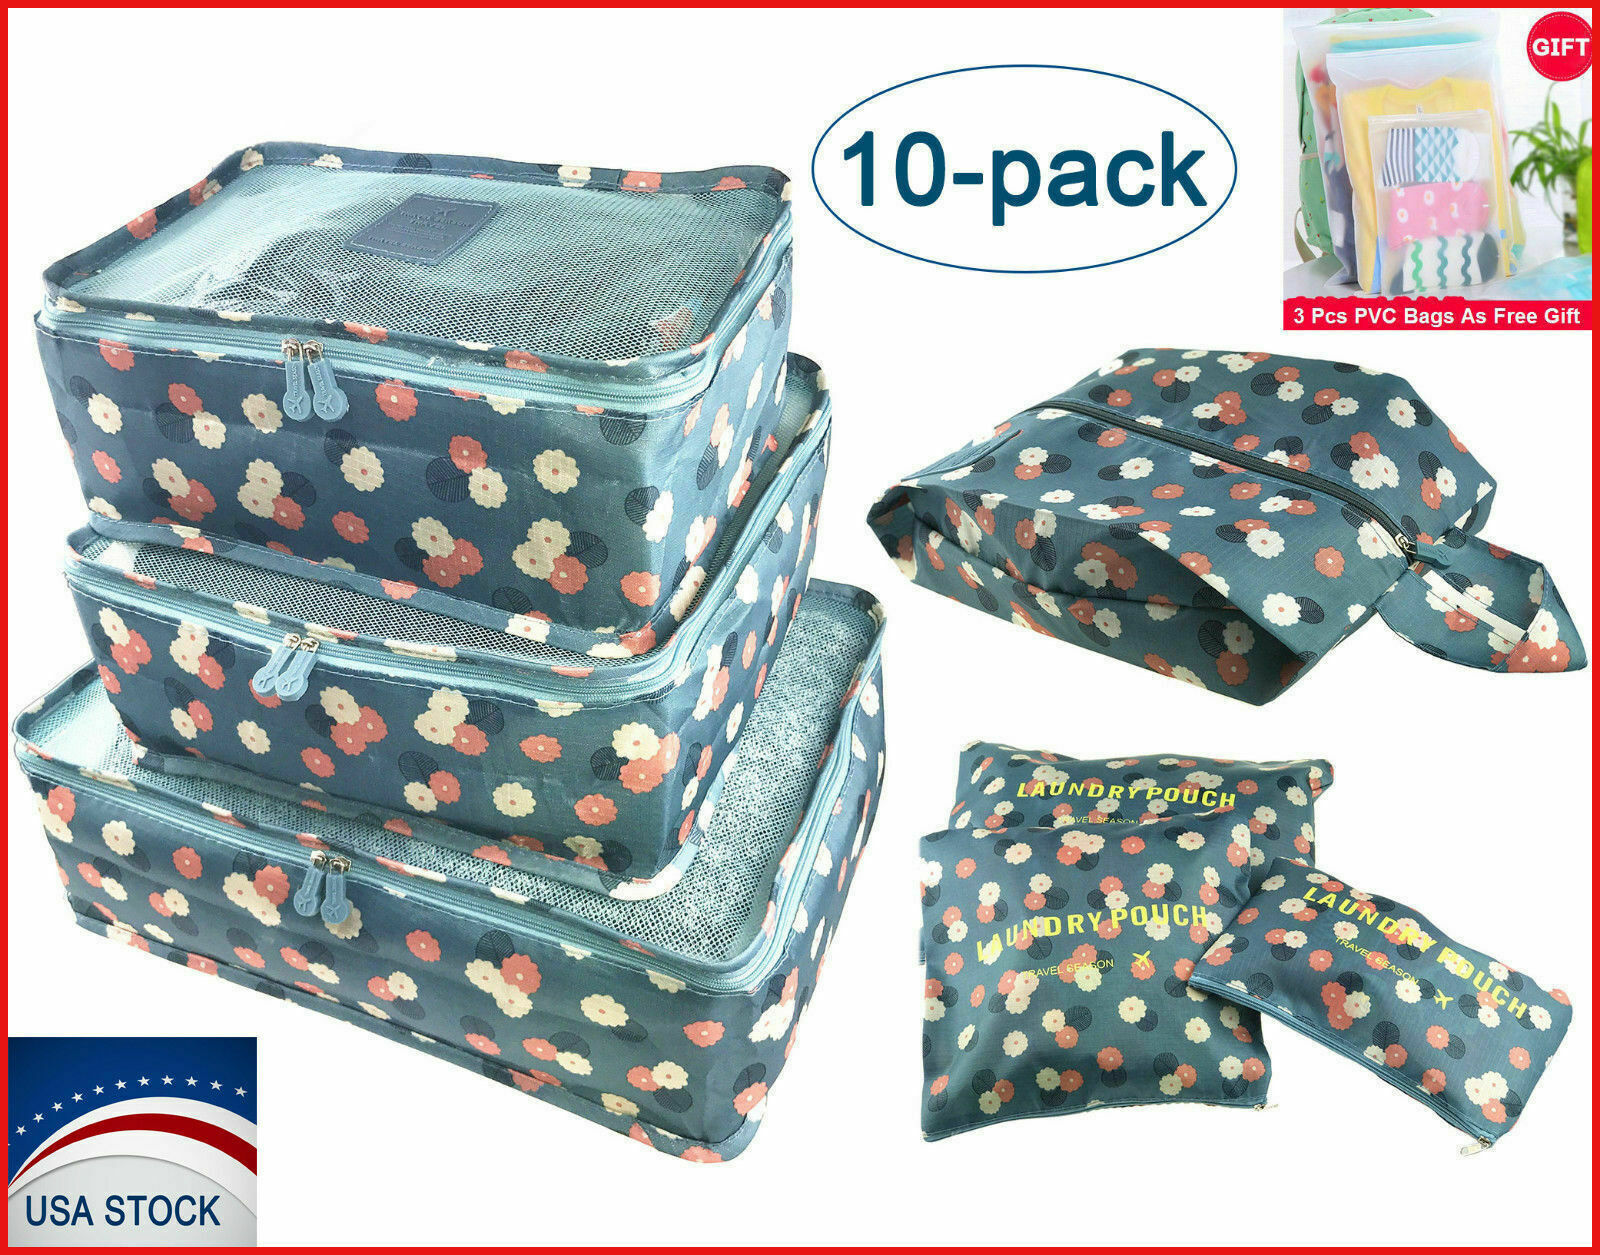 Travel Storage Bags Clothes Packing Cubes Luggage Organizers